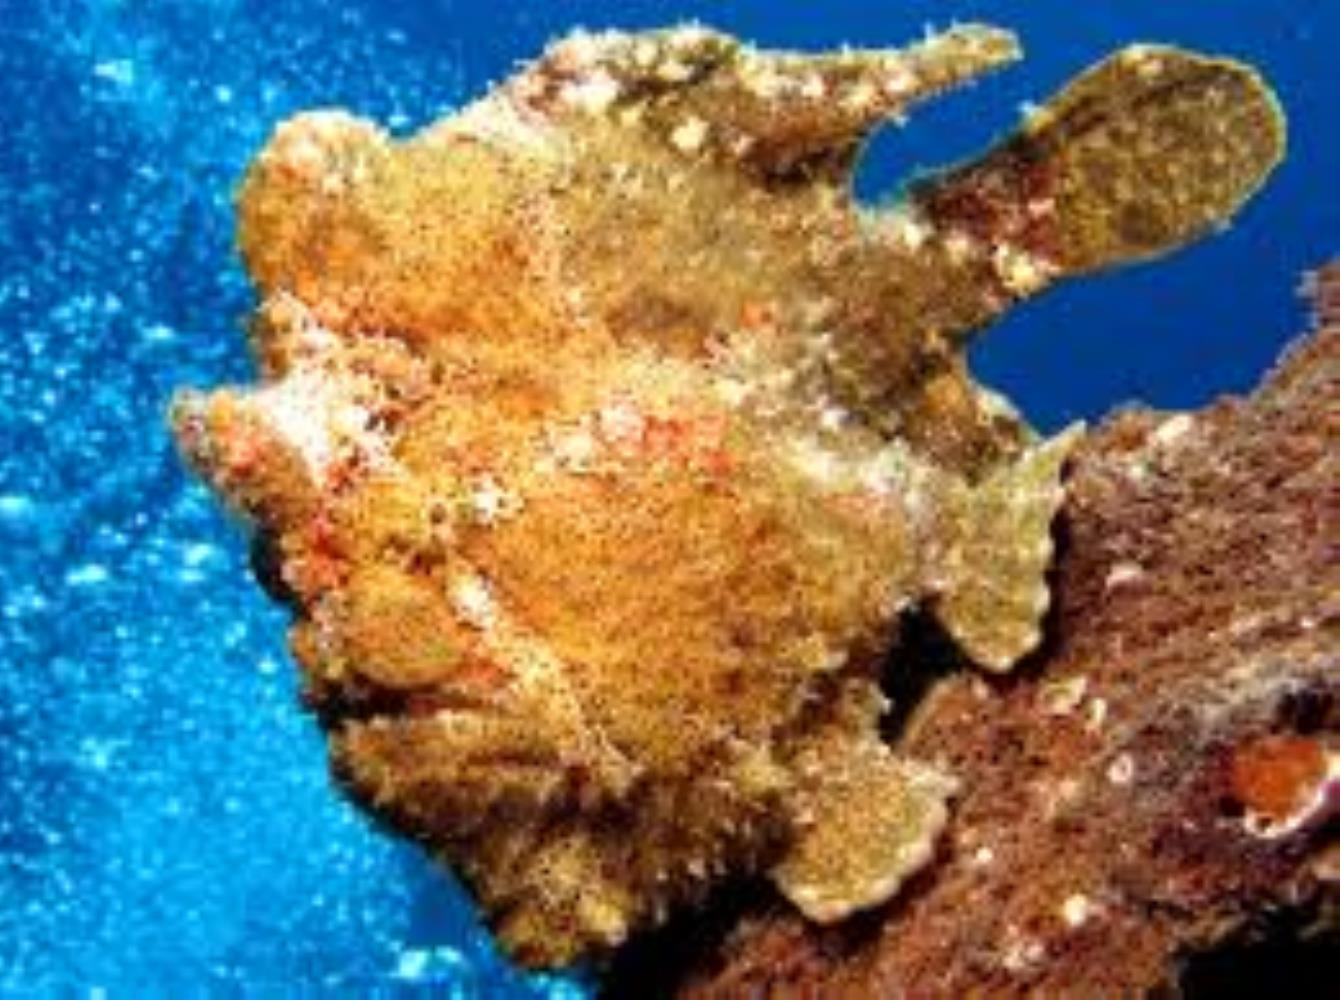 Giant/Commerson's Frogfish